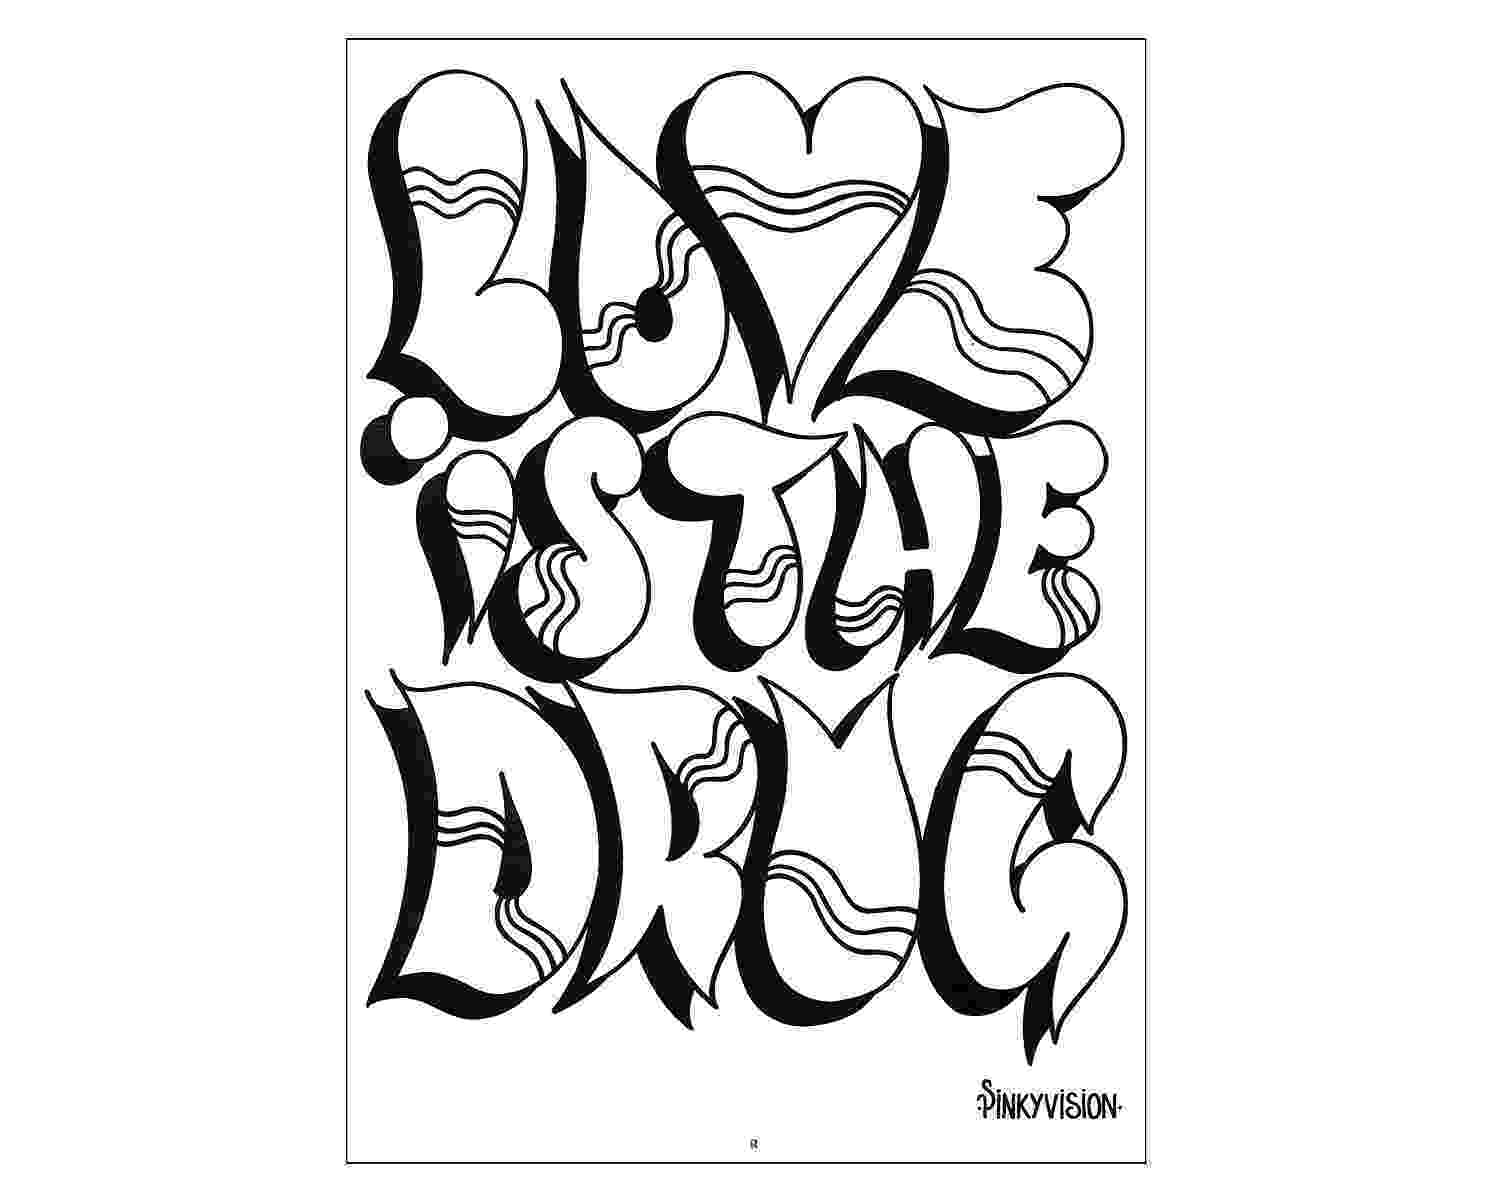 free printable coloring sheets with names grafiti new most graffiti sketches graffiti coloring with sheets free names printable coloring